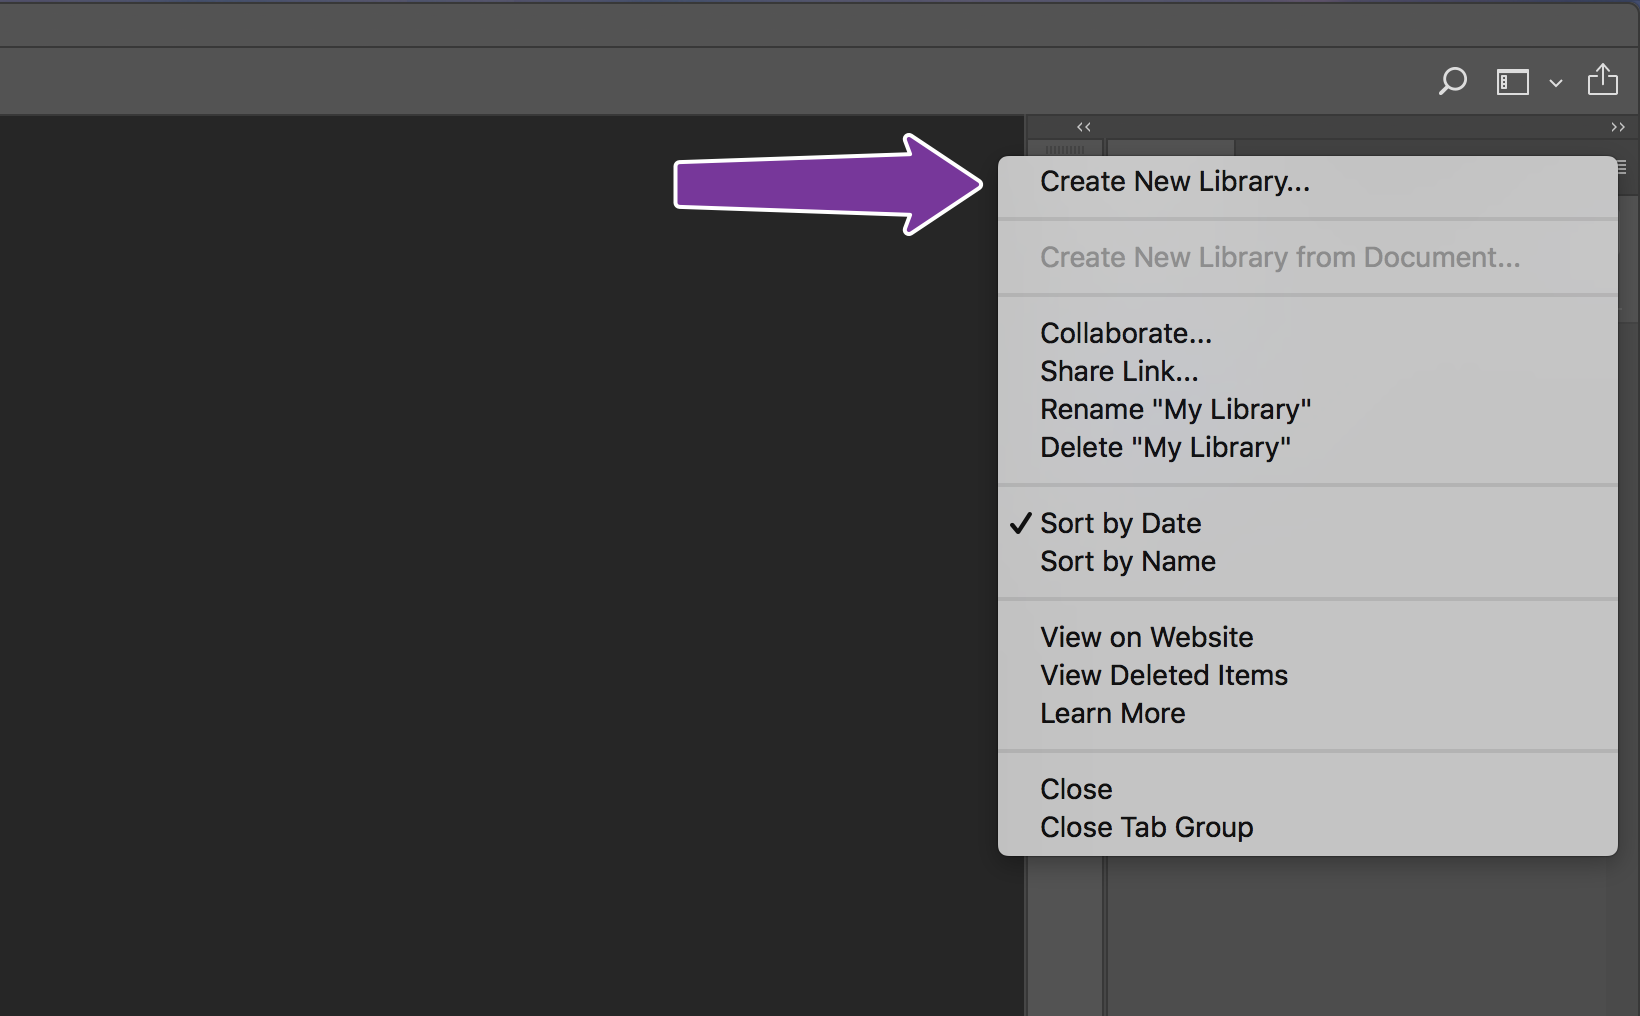 Create a new Adobe CC library.